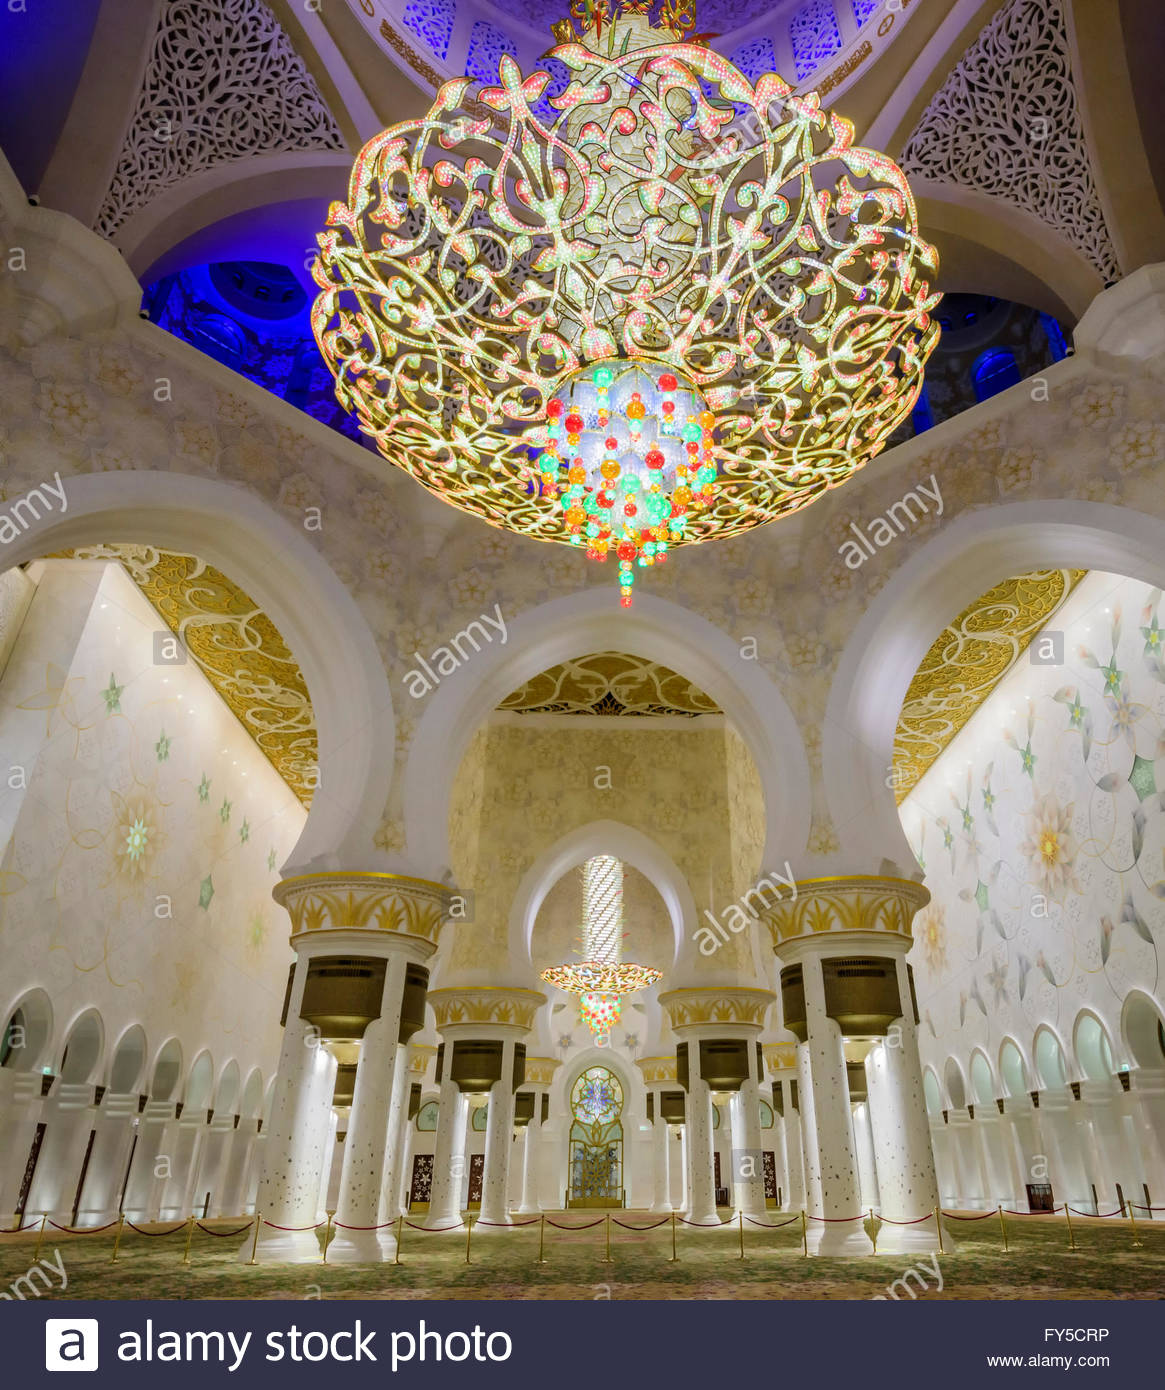 The main prayer's room chandelier in Sheikh Zayed grand Mosque, Abu Dhabi - Stock Image